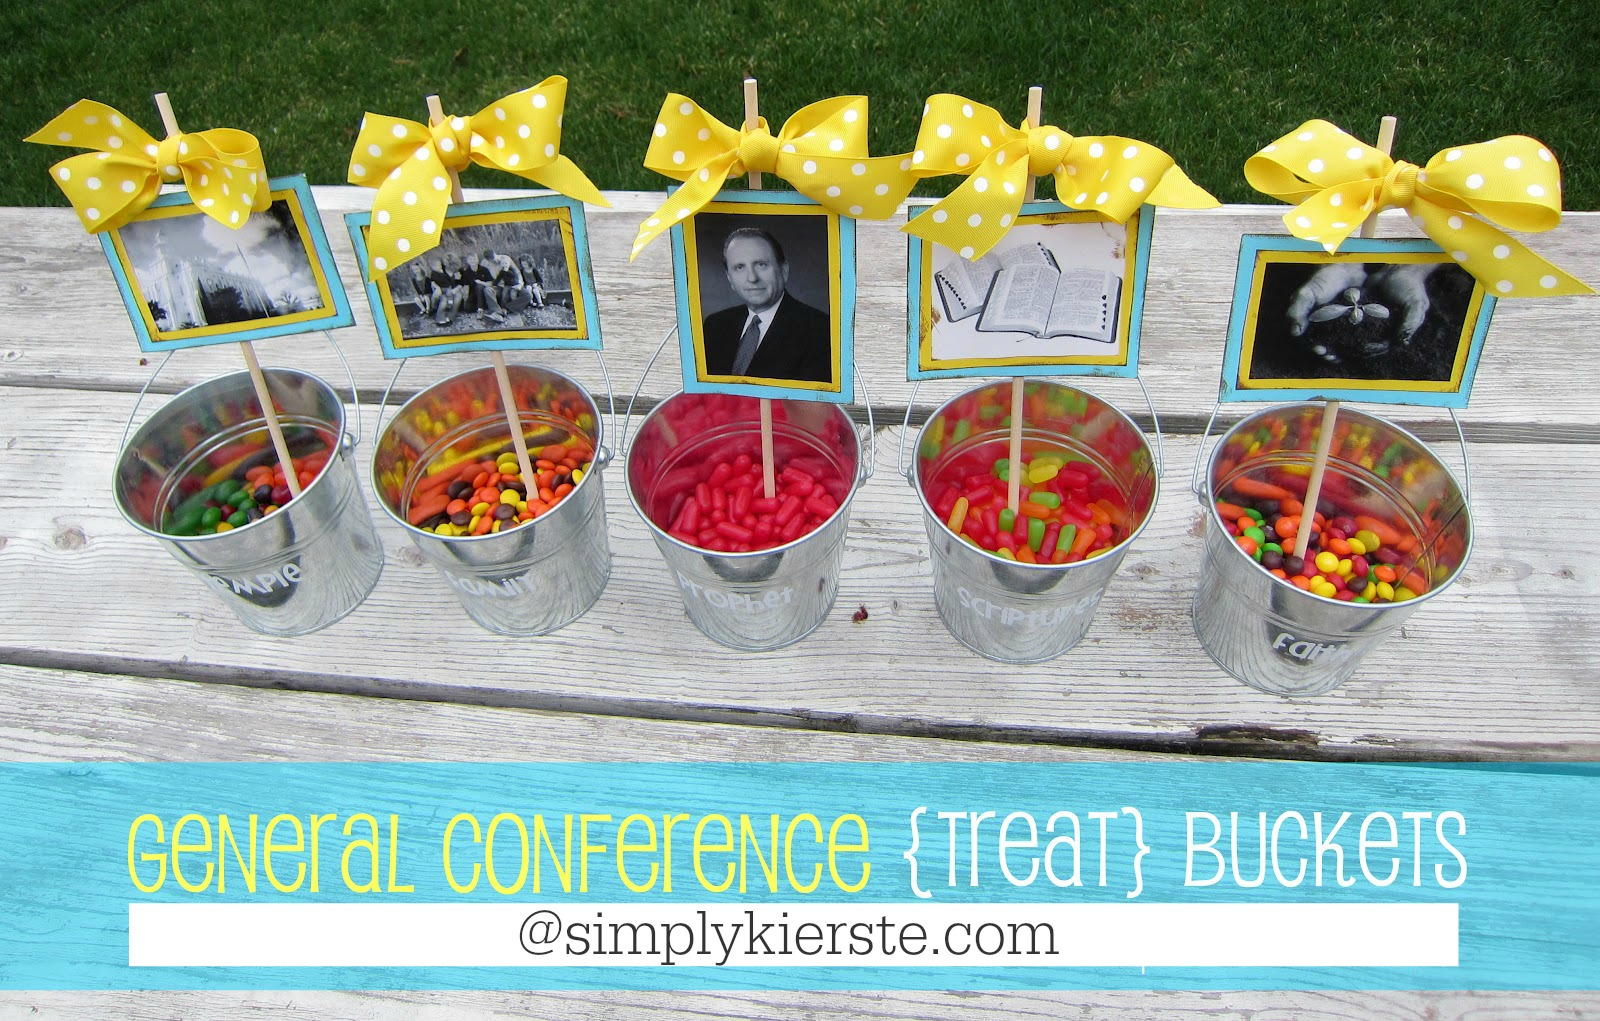 General Conference Treat Buckets | simplykierste.com